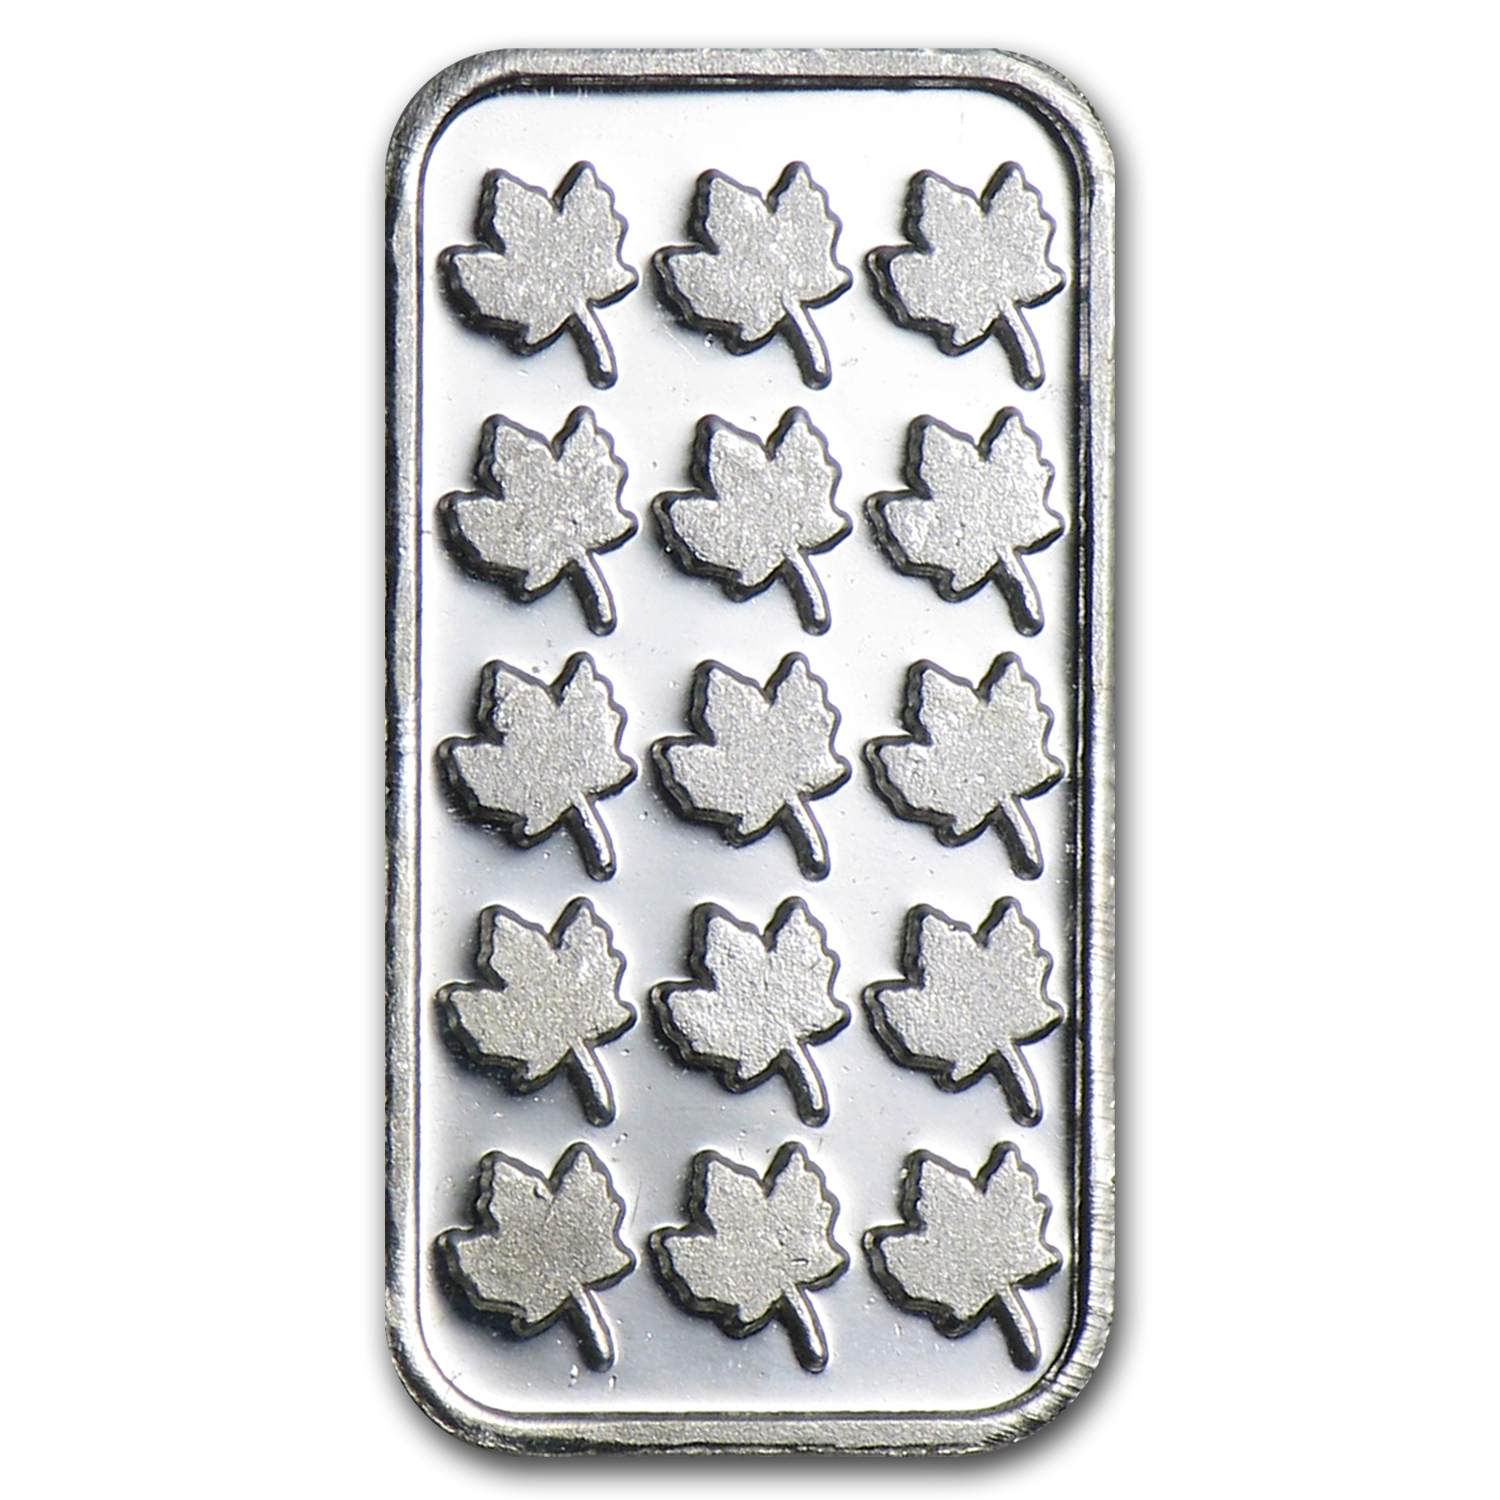 1 gram Silver Bars - Maple Leaf